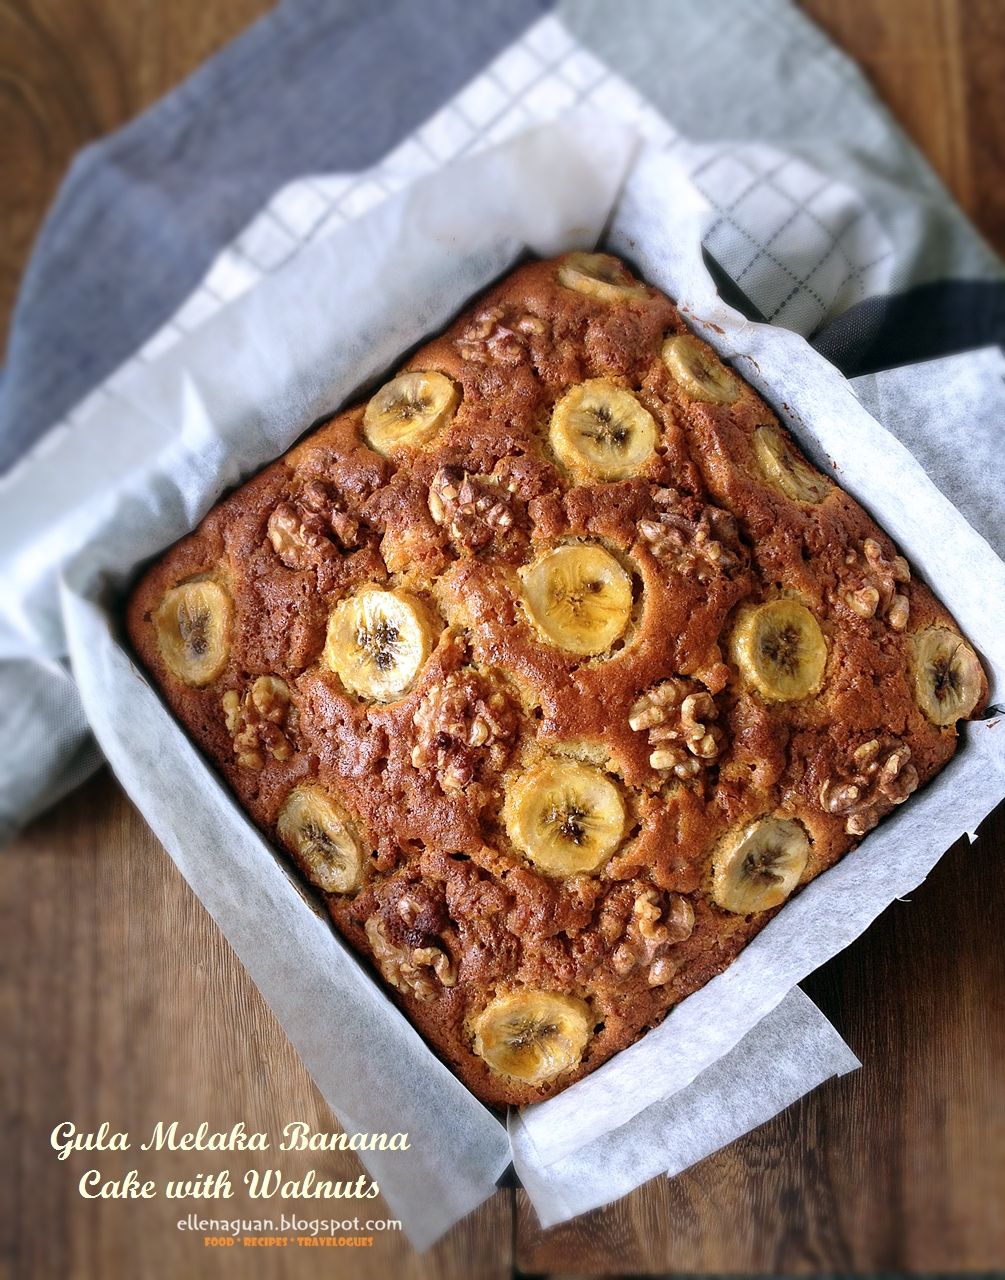 Recipe Gula Melaka Banana Cake With Walnuts